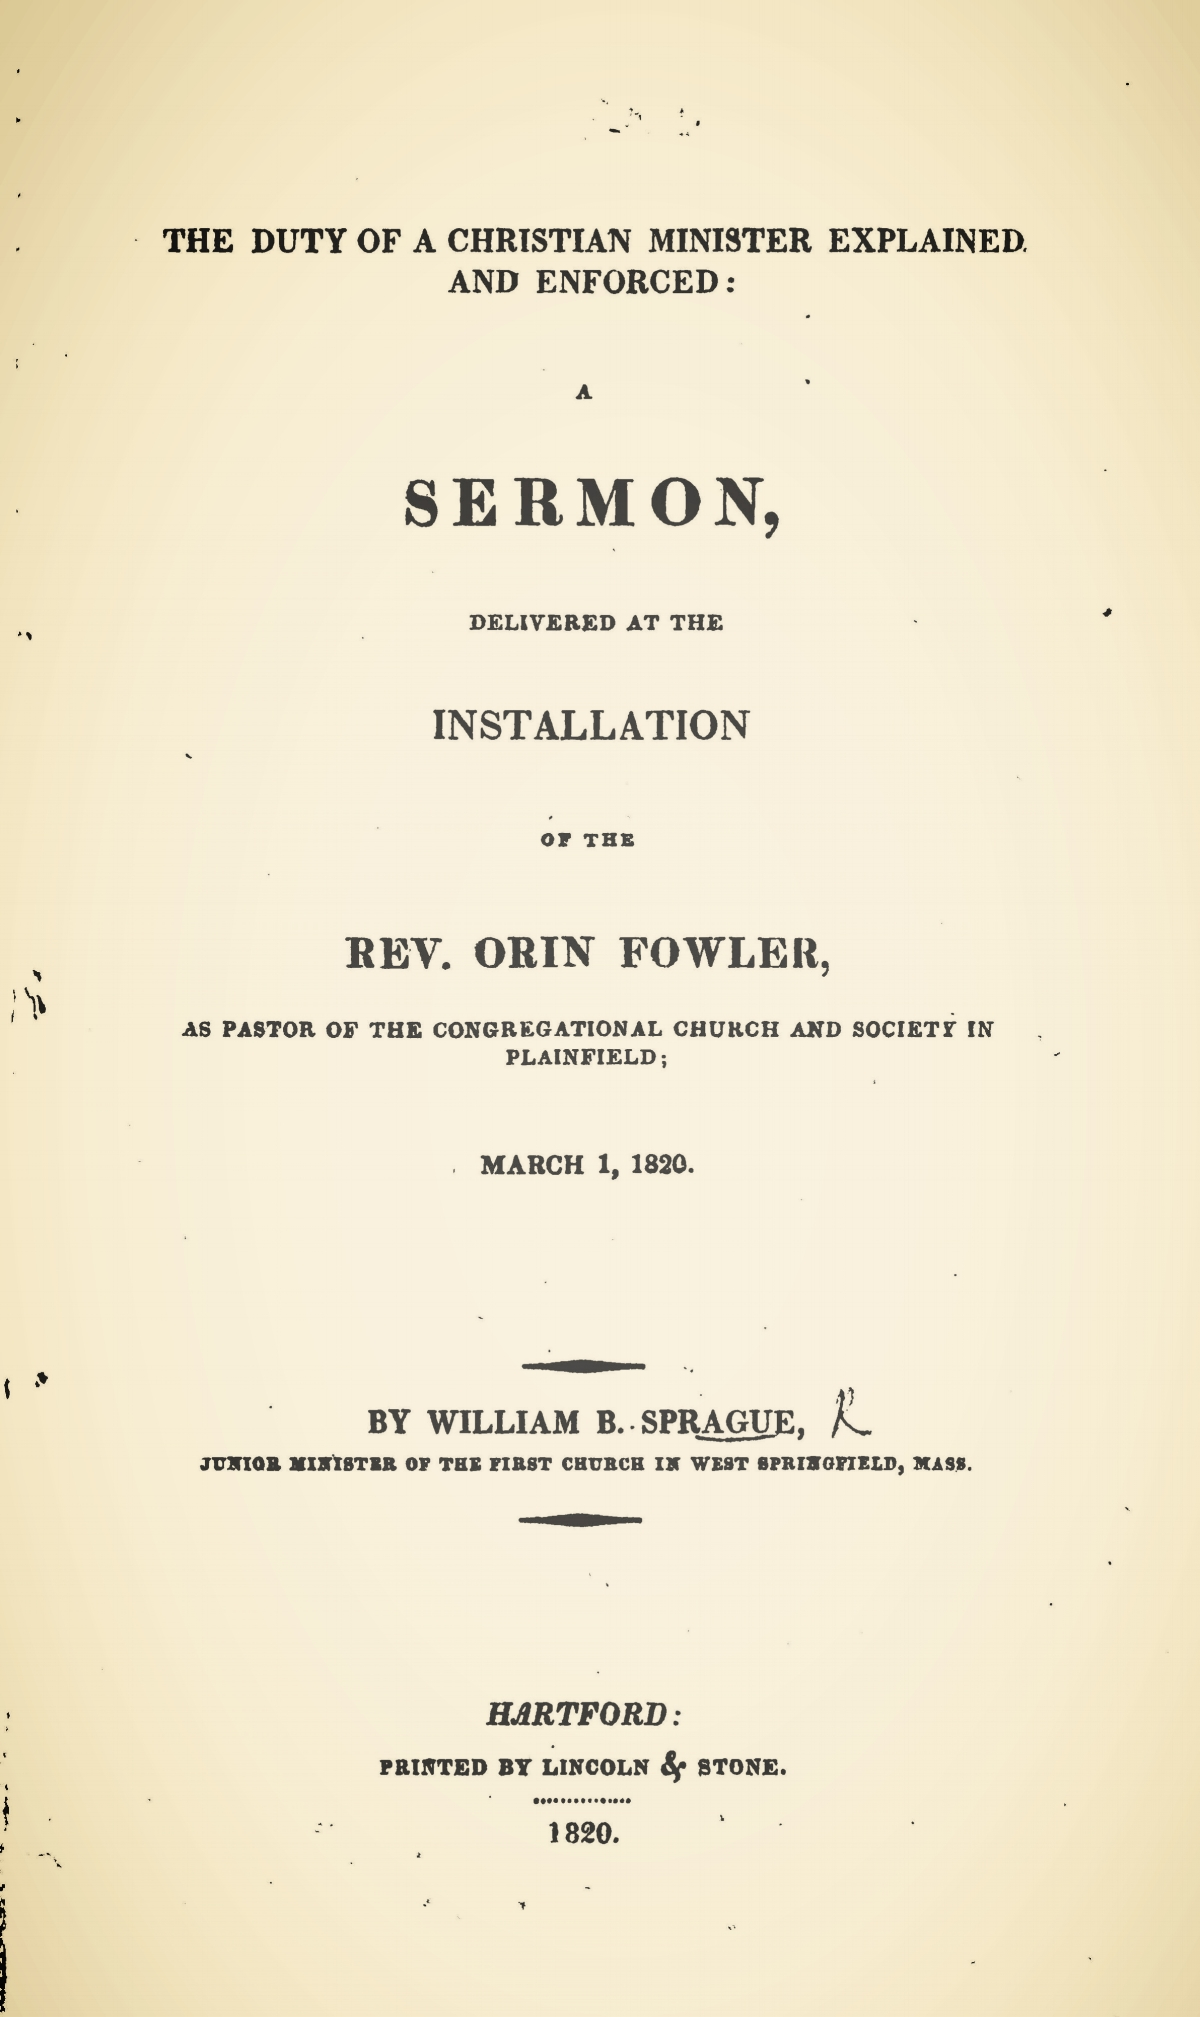 Sprague, William Buell, The Duty of a Christian Minister Explained and Enforced Title Page.jpg